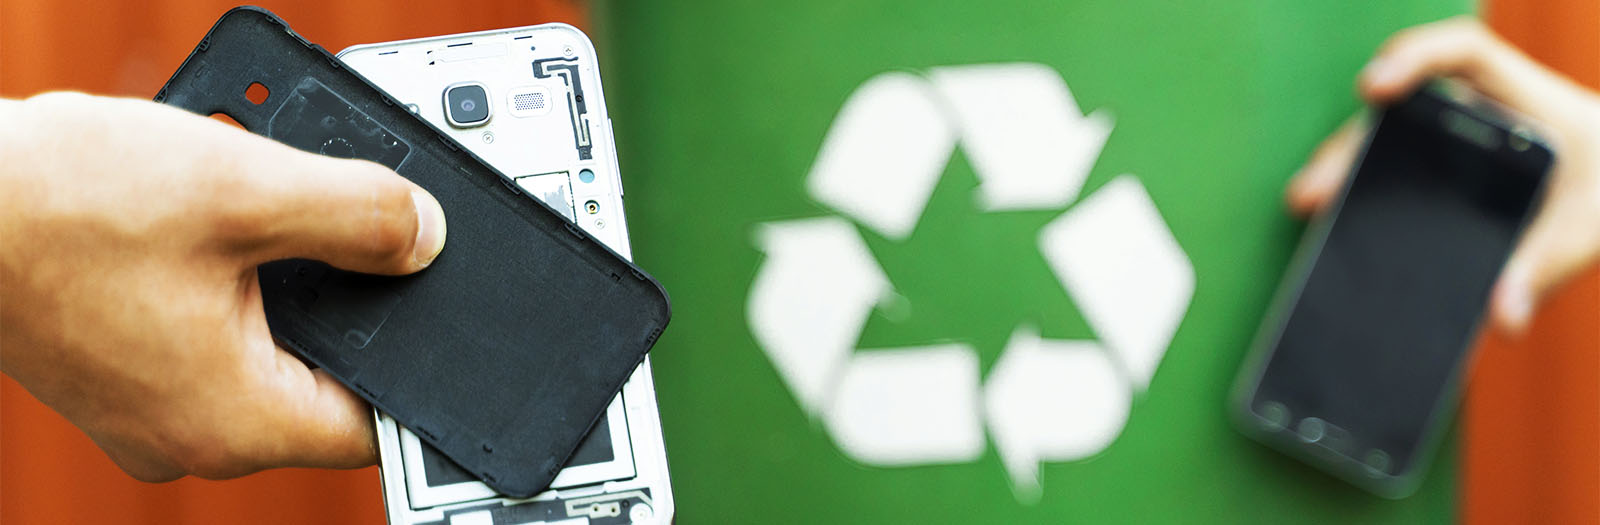 photo of disassembled smartphone in hand with a recycling bin in background